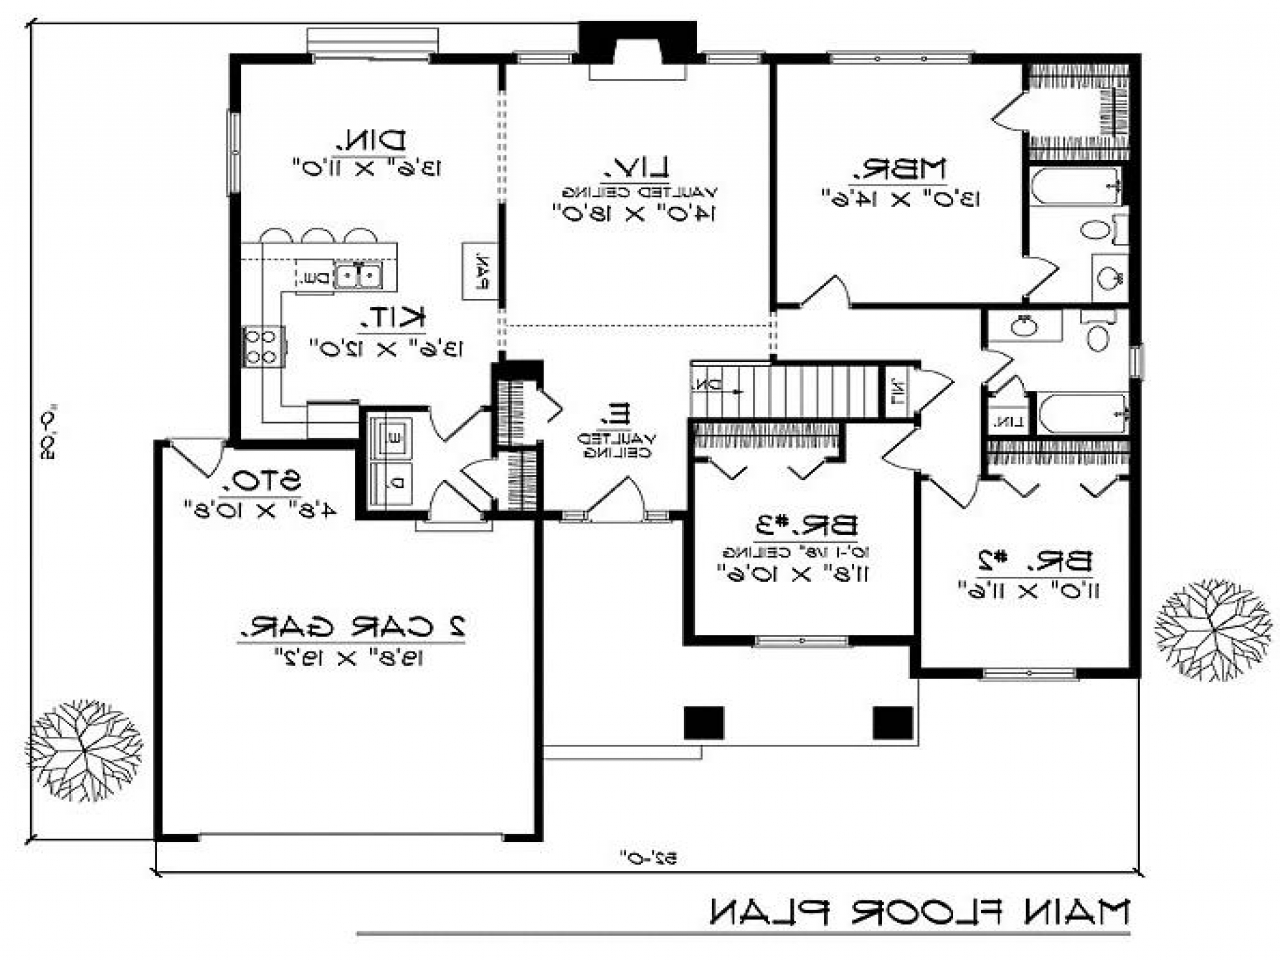 2 bedroom caribbean house plans 2 bedroom duplex house for 7 bedroom house plans